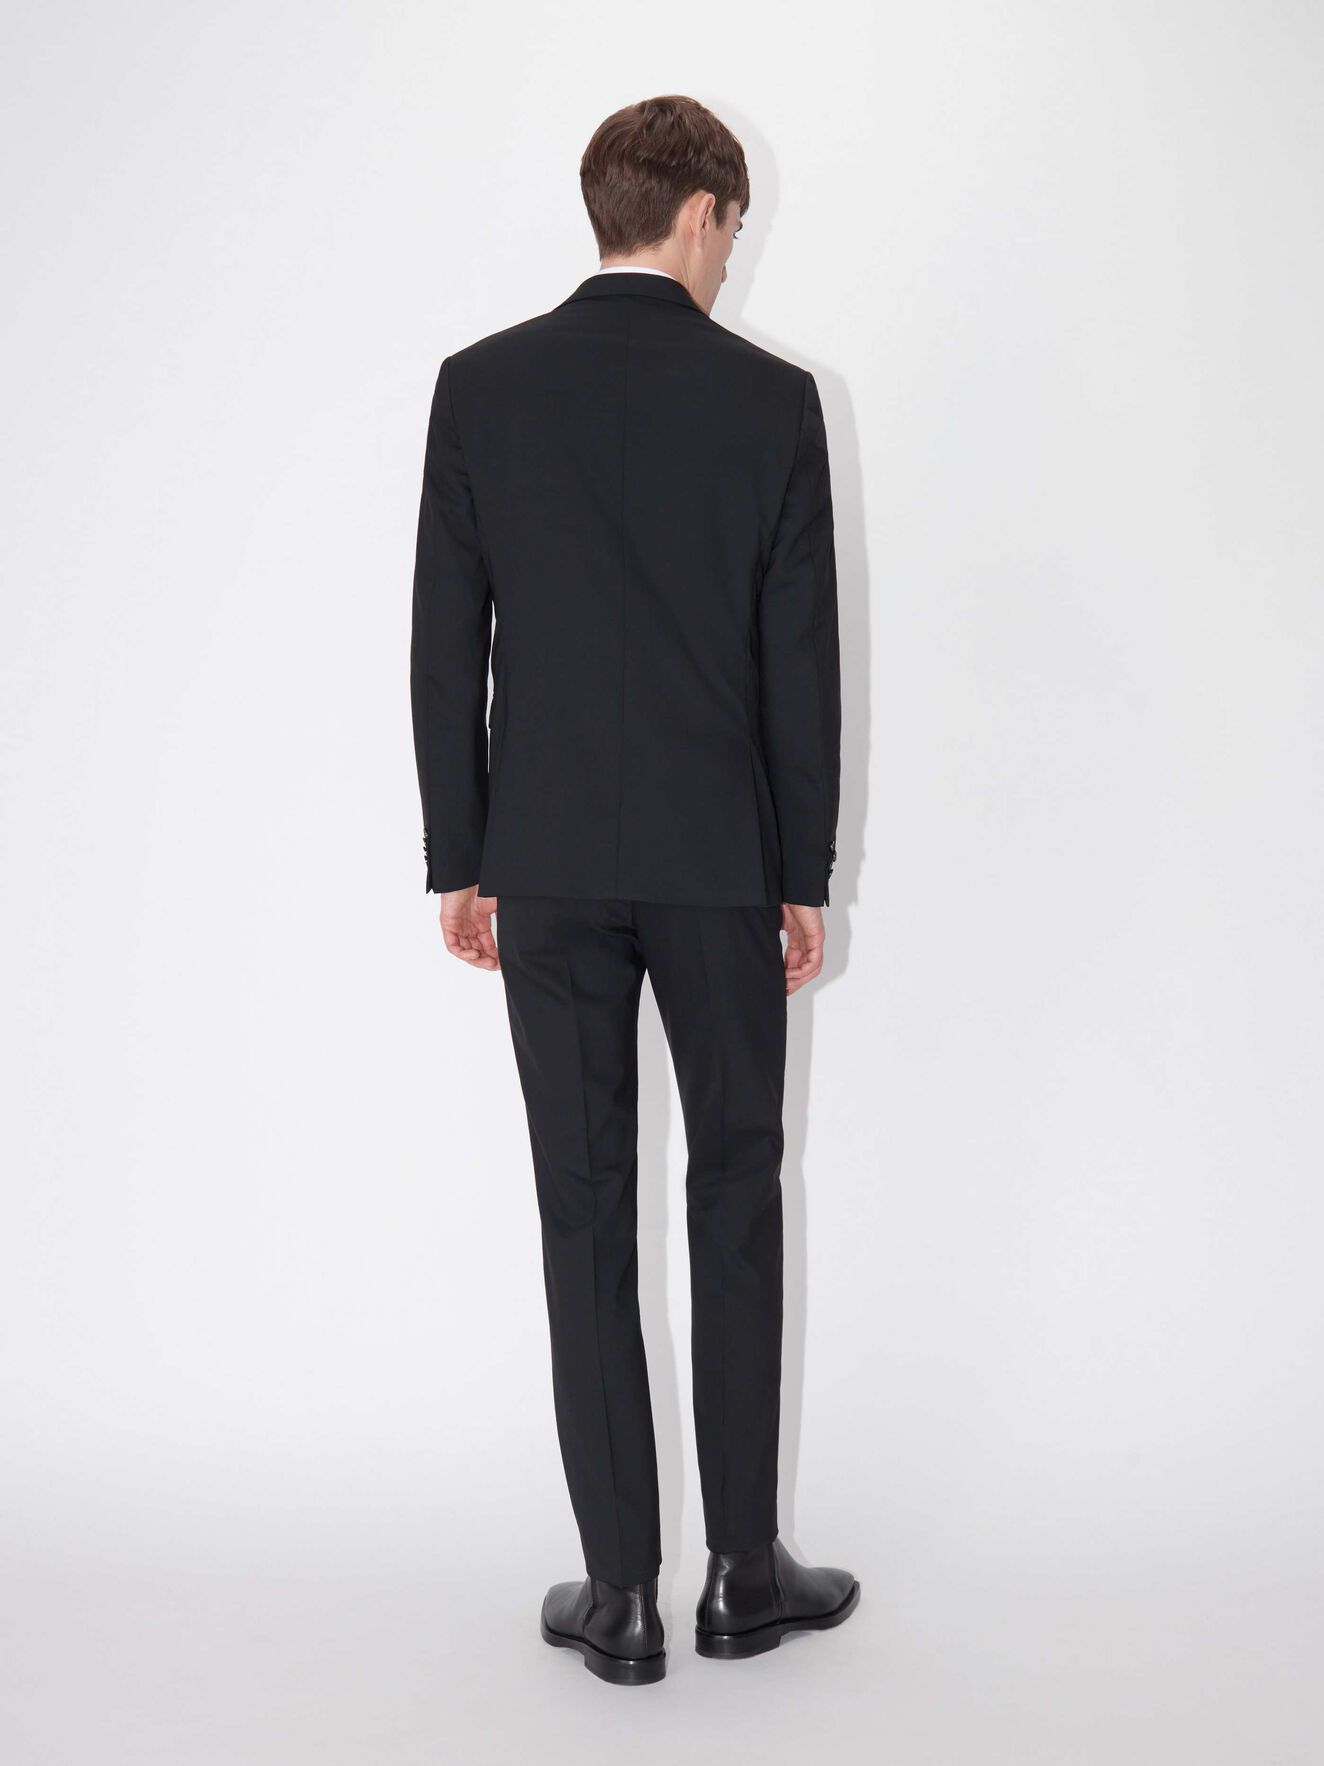 Malthe Trousers in Black from Tiger of Sweden